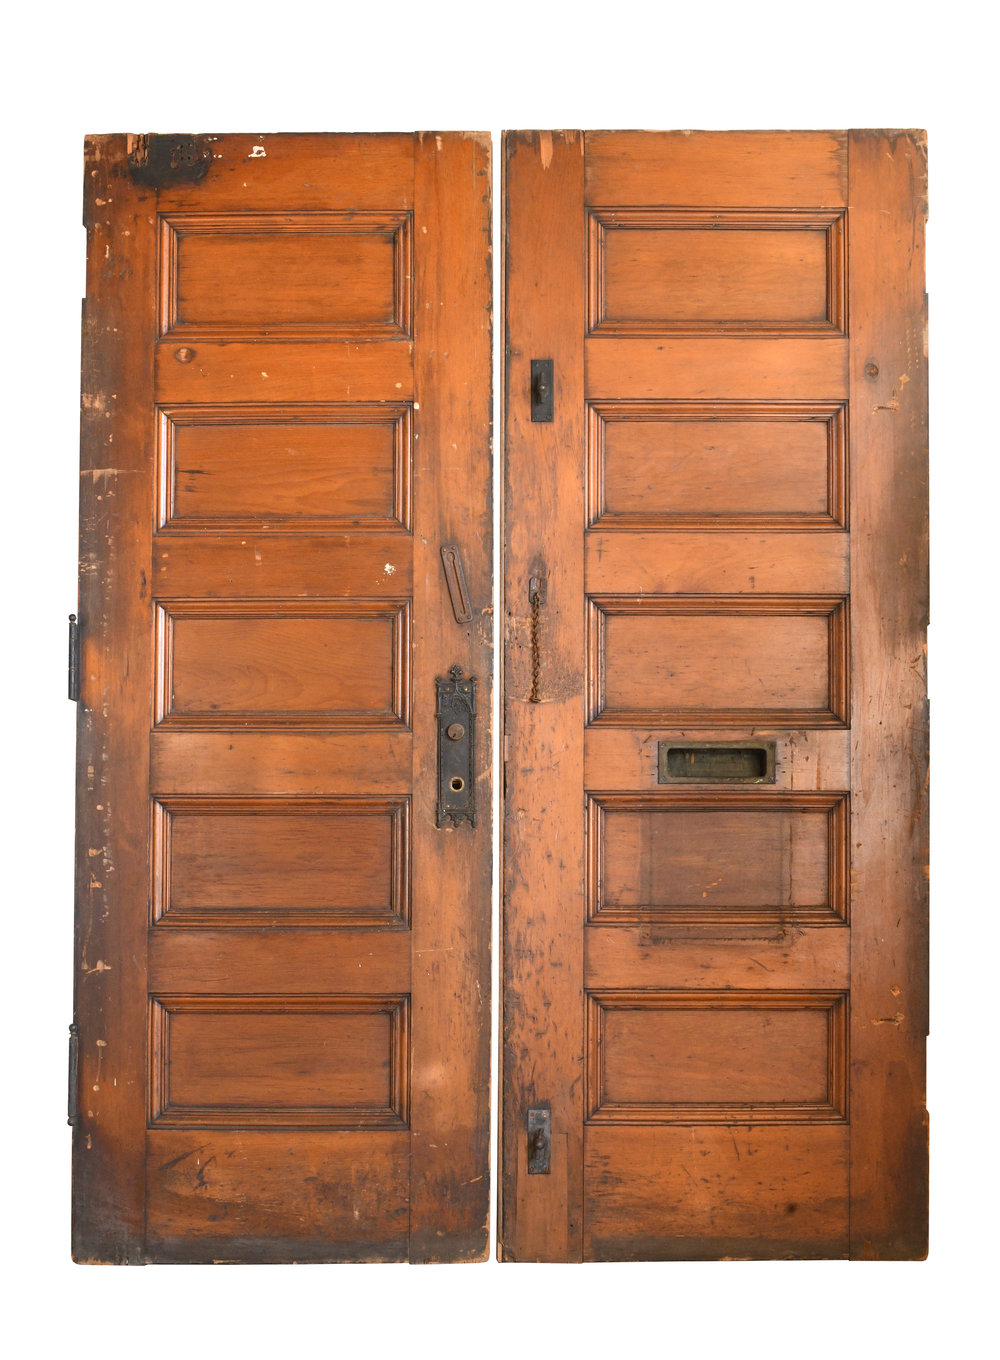 47742-double-doors-with-strap-hinges-unpainted-side-front-view.jpg